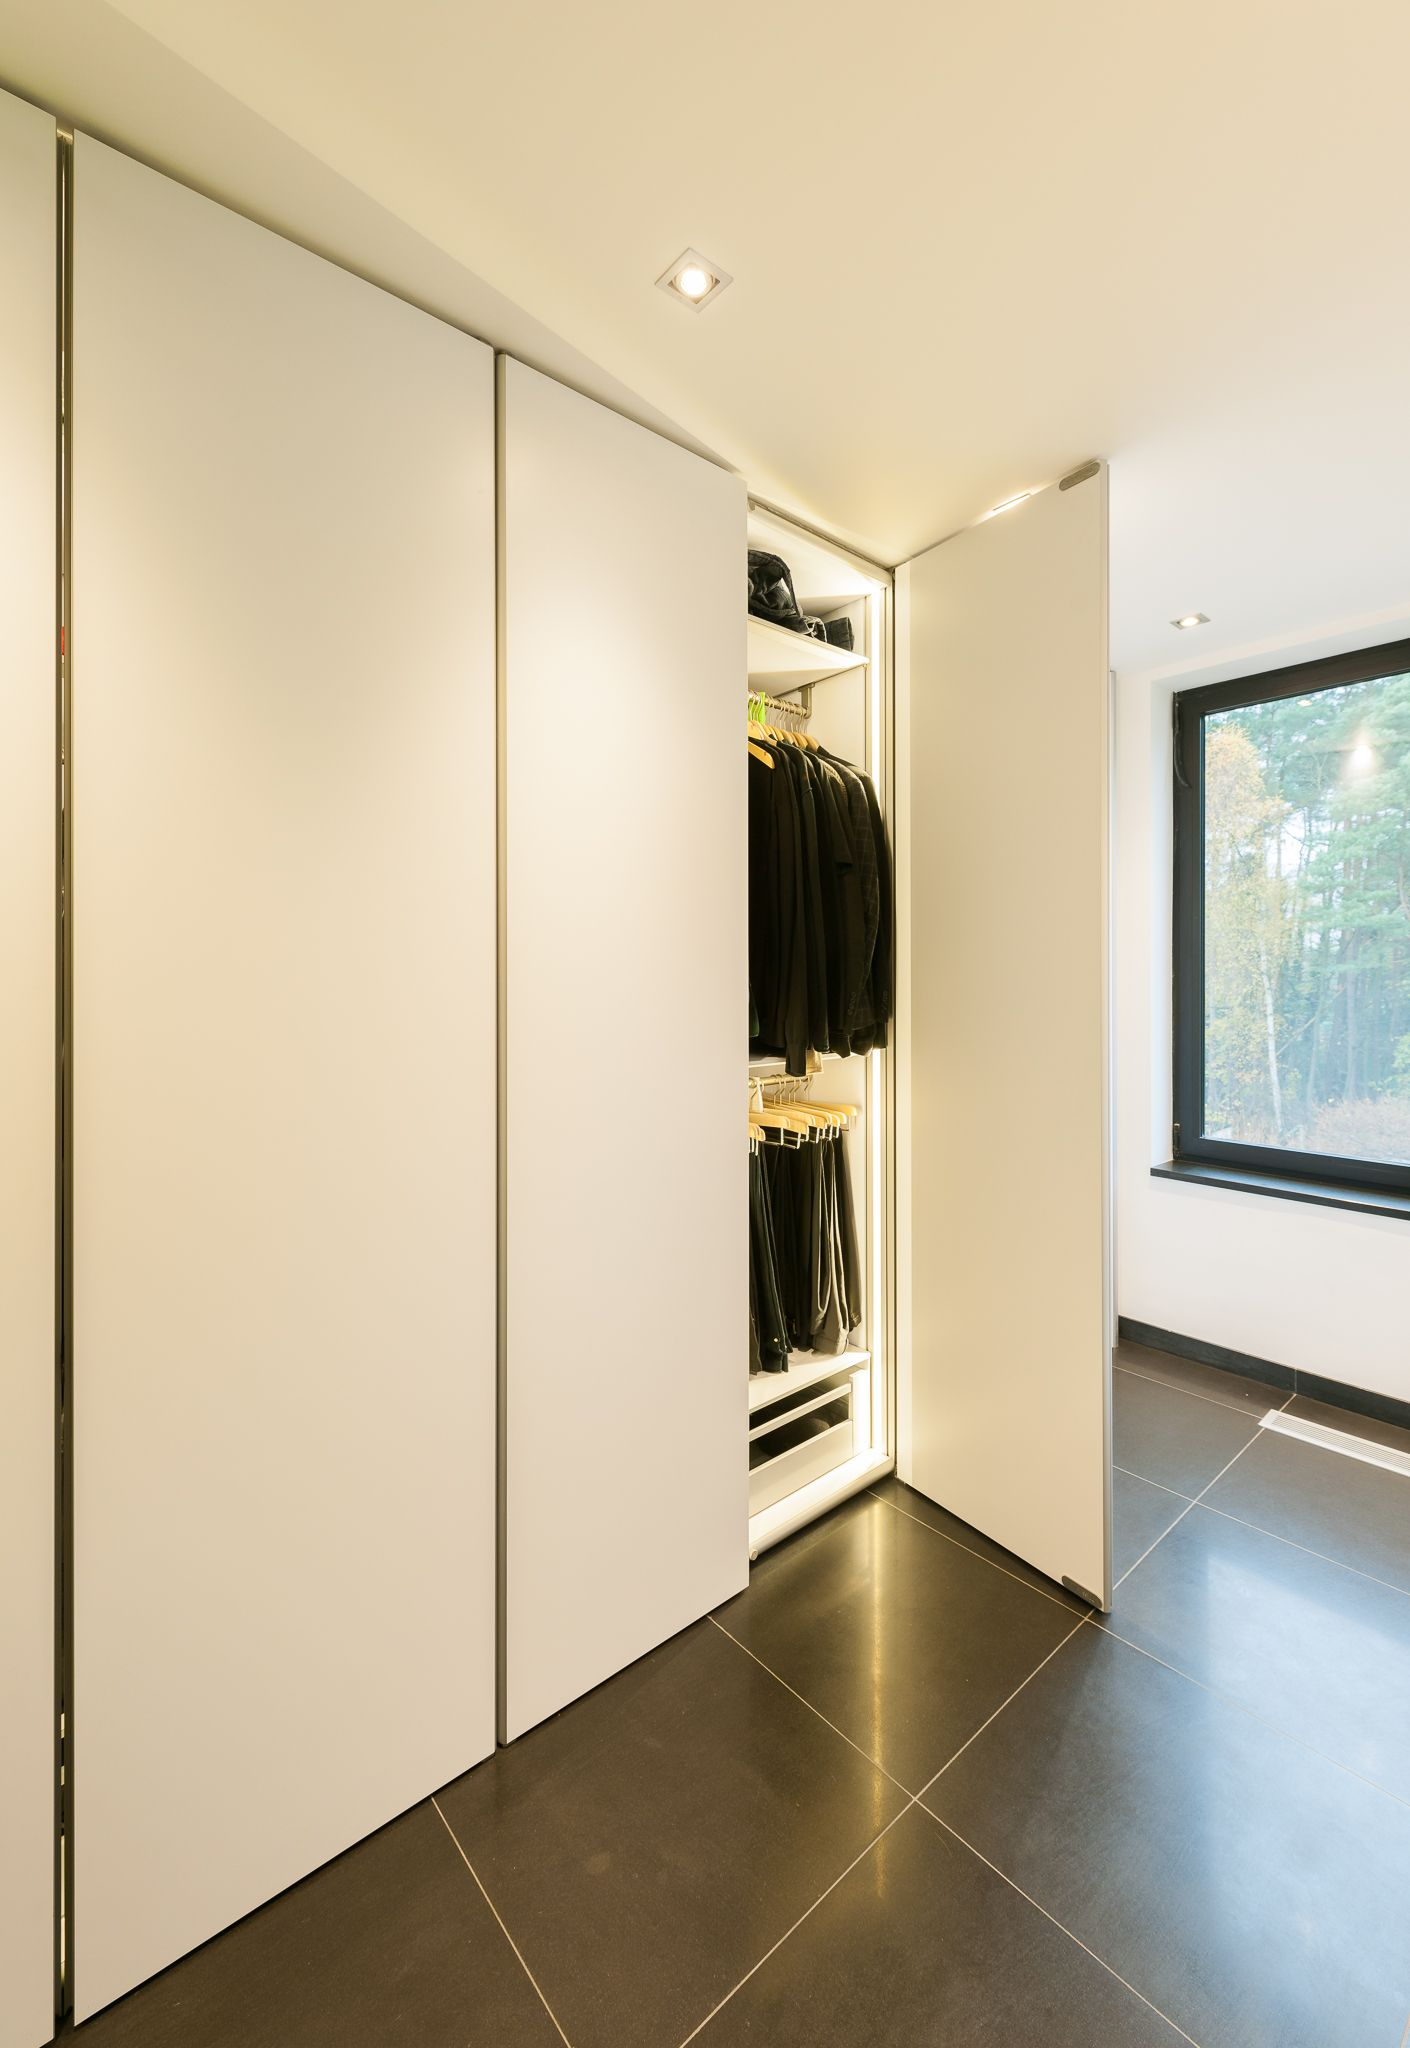 Loft bedroom fitted wardrobes  Strakke inbouwkastent  Home  Pinterest  Wardrobes Bedrooms and